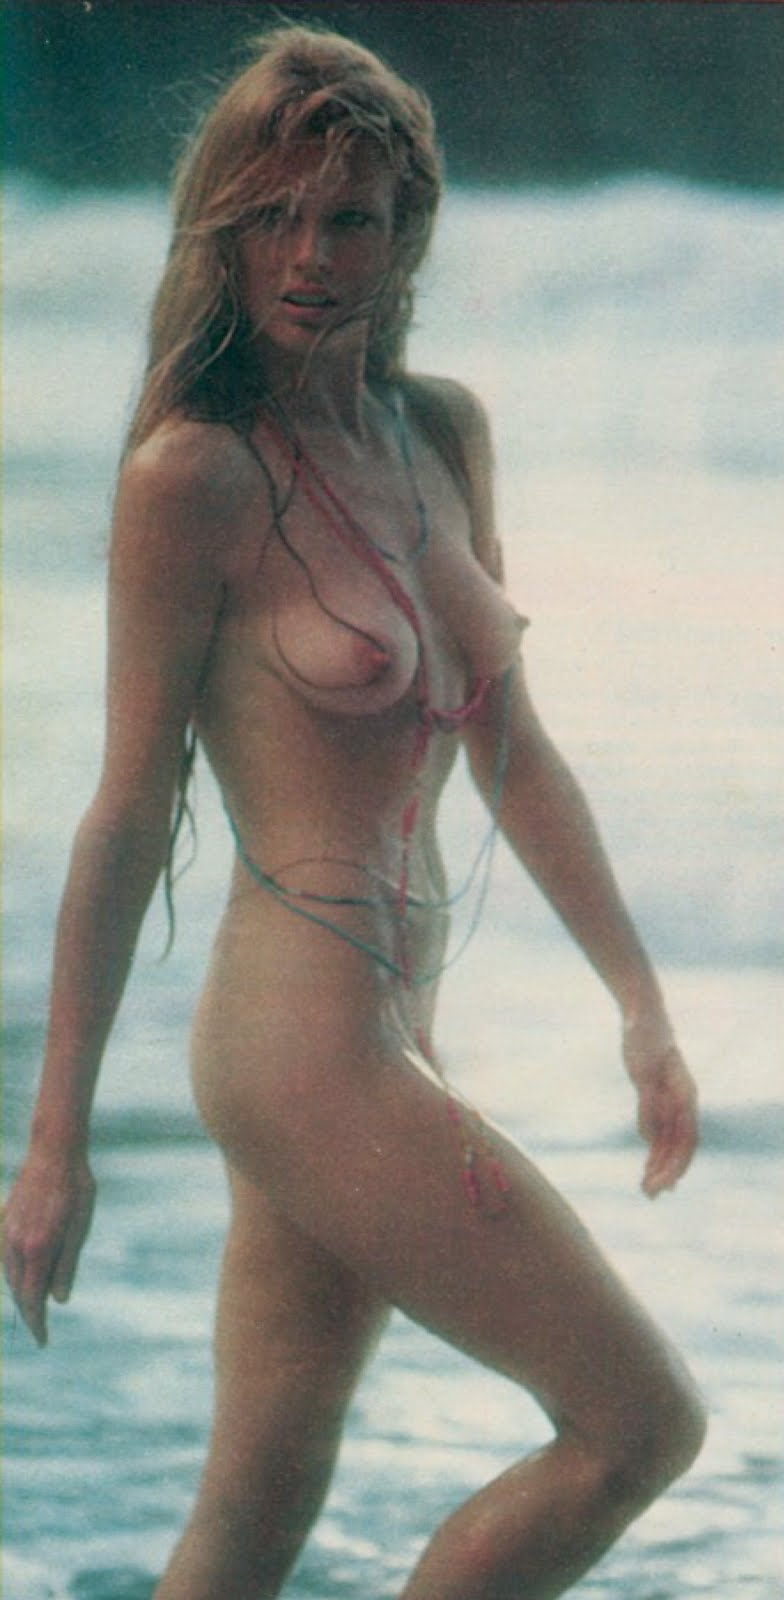 Loses kim basinger playboy nude with